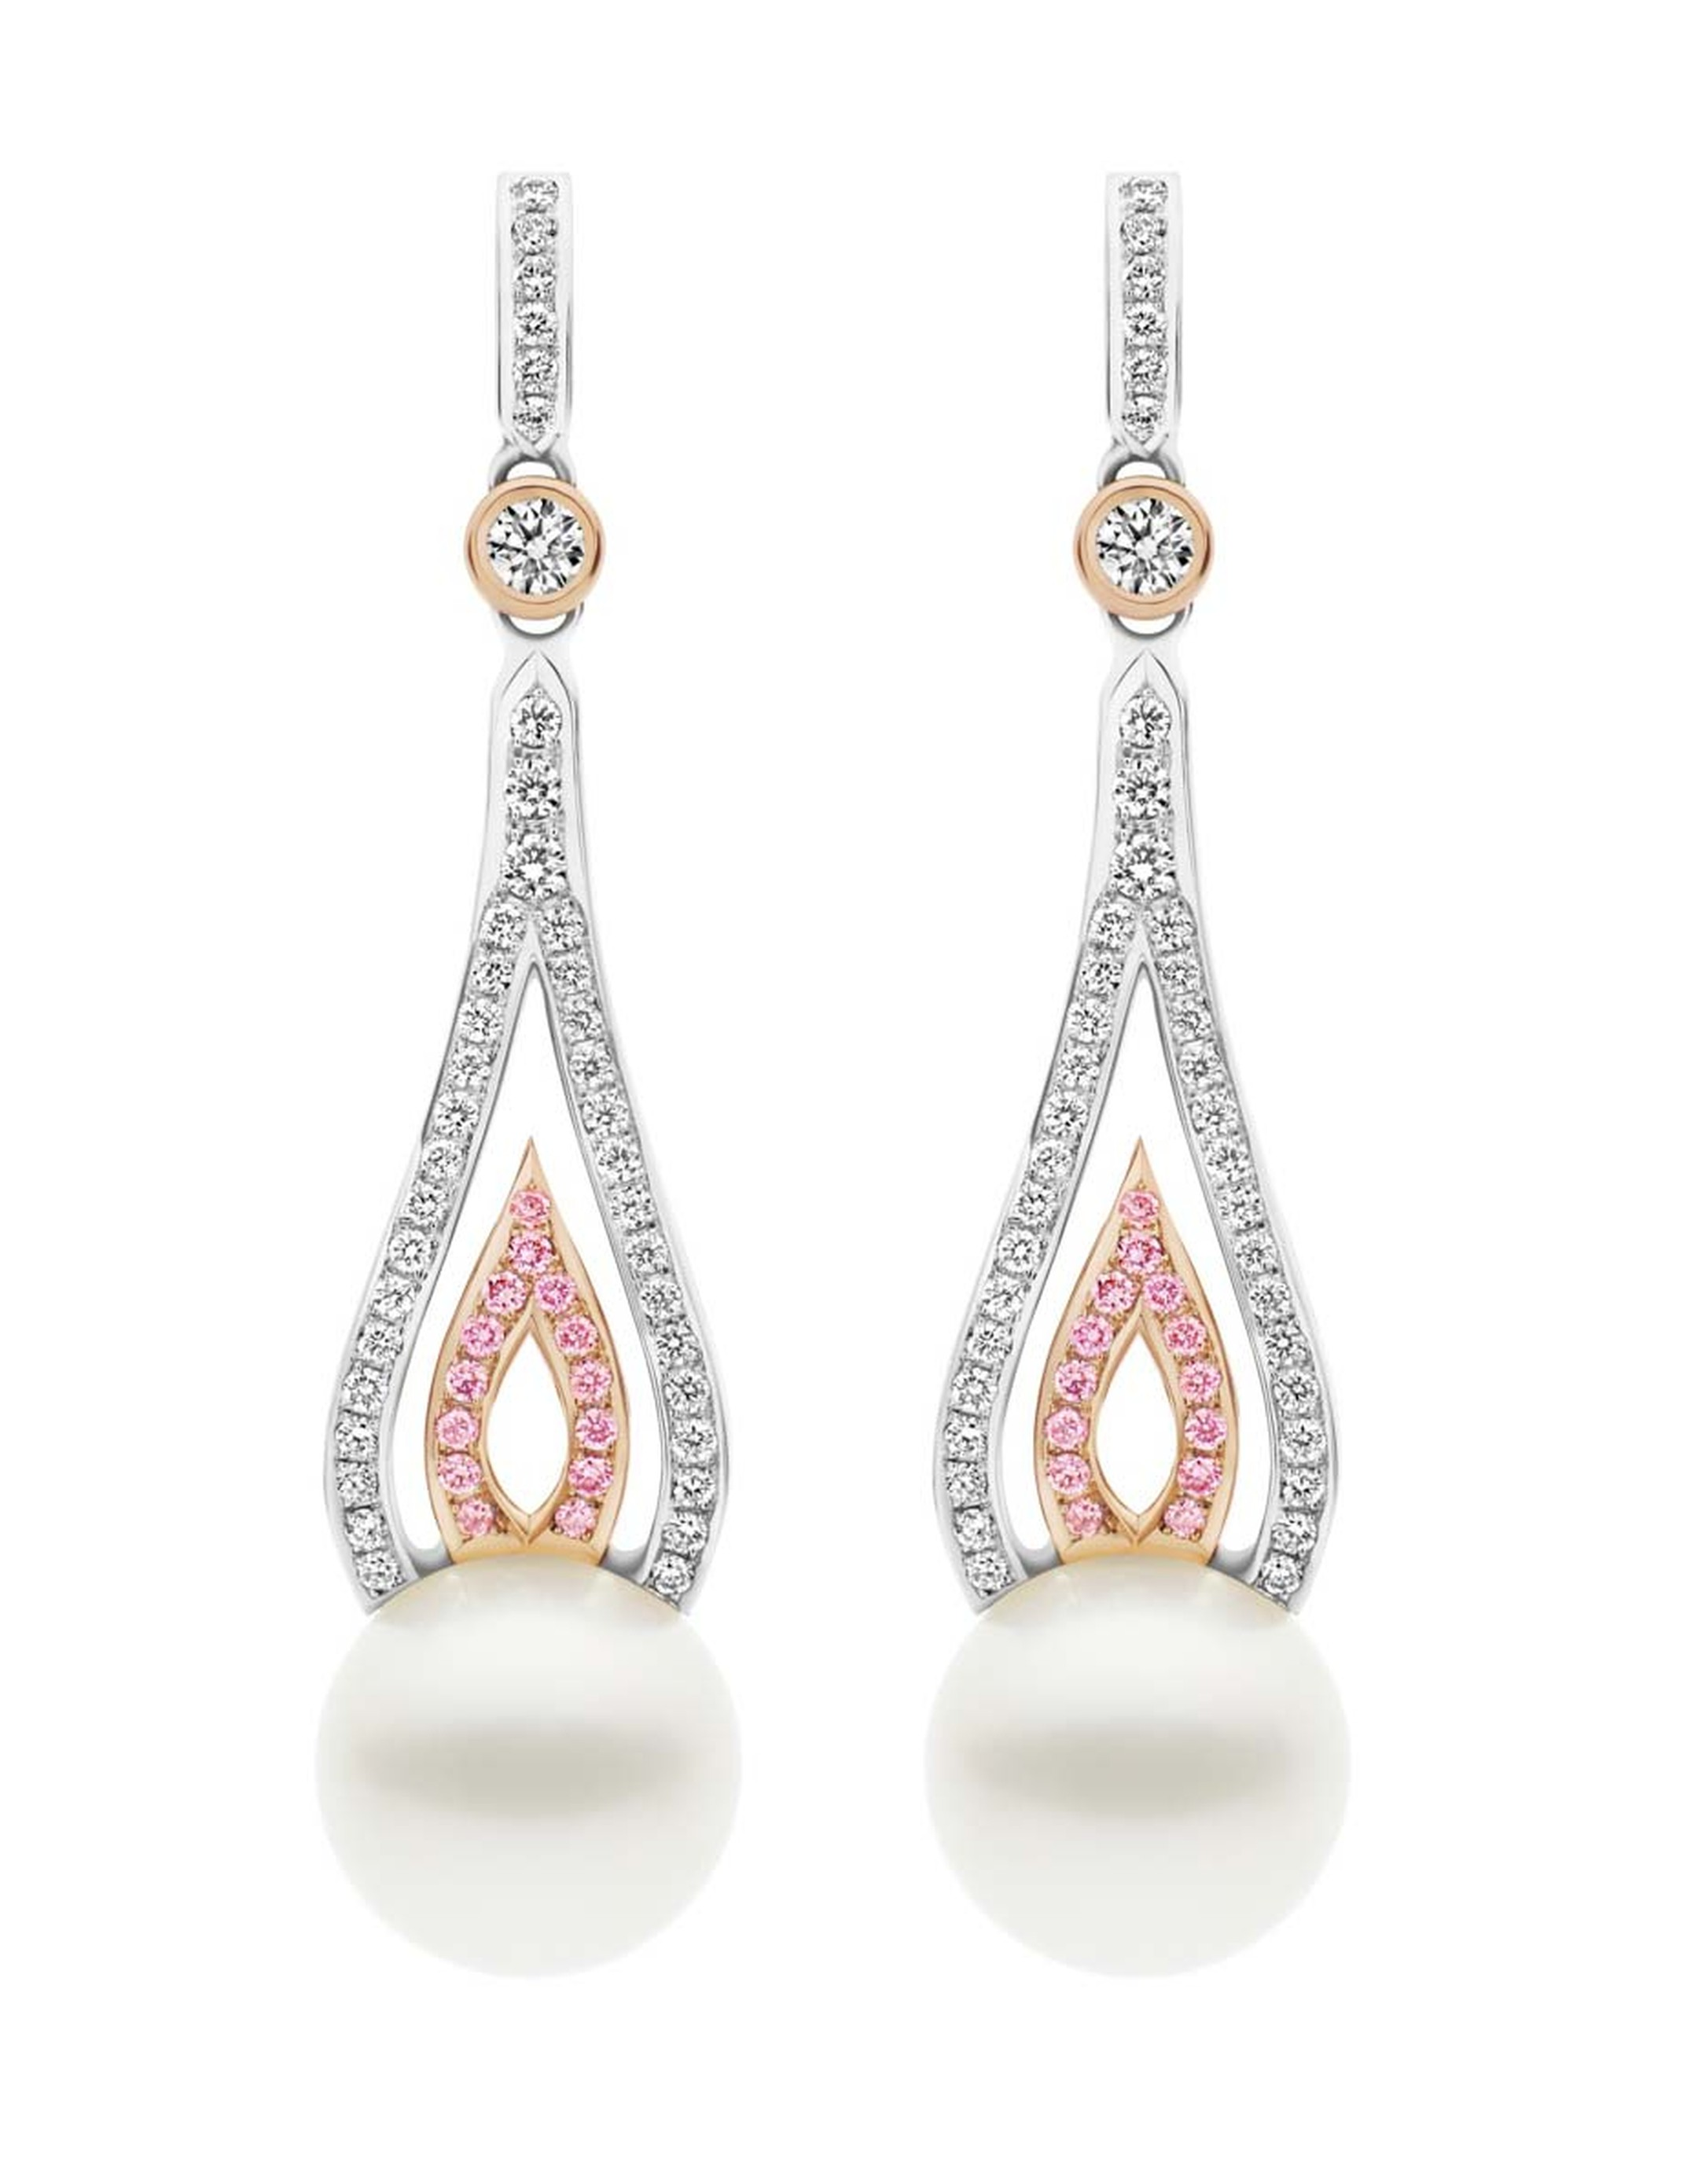 Kailis Flame pearl earrings in white and rose gold, set with pink and white pavé diamonds and two 12-13mm round Australian South Sea pearls.